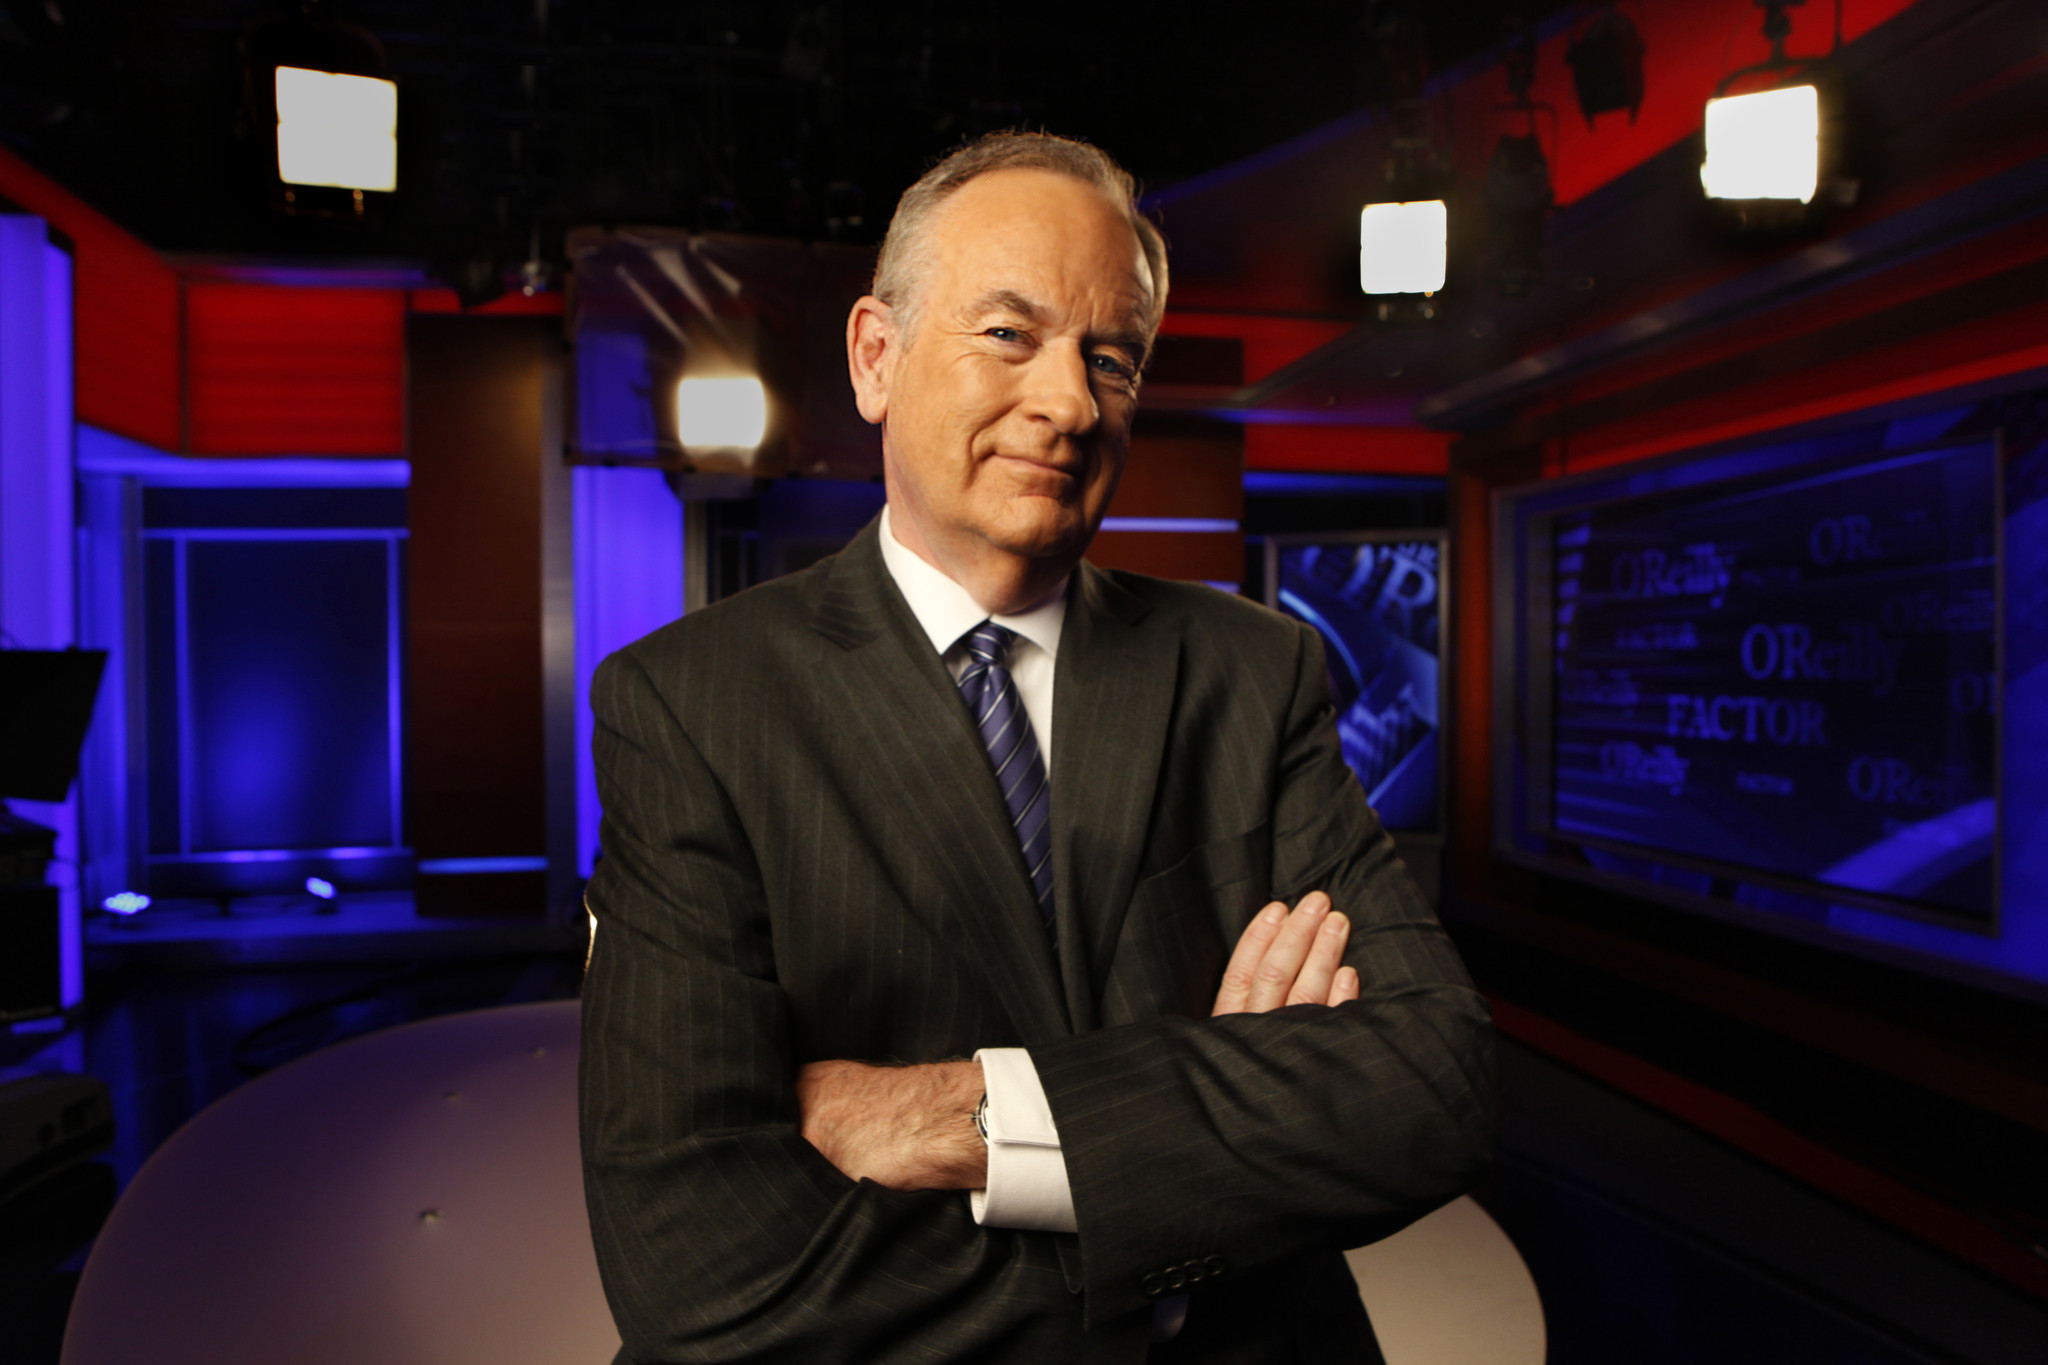 Bill O'Reilly to guest on Sean Hannity's show Tuesday after being fired from Fox News